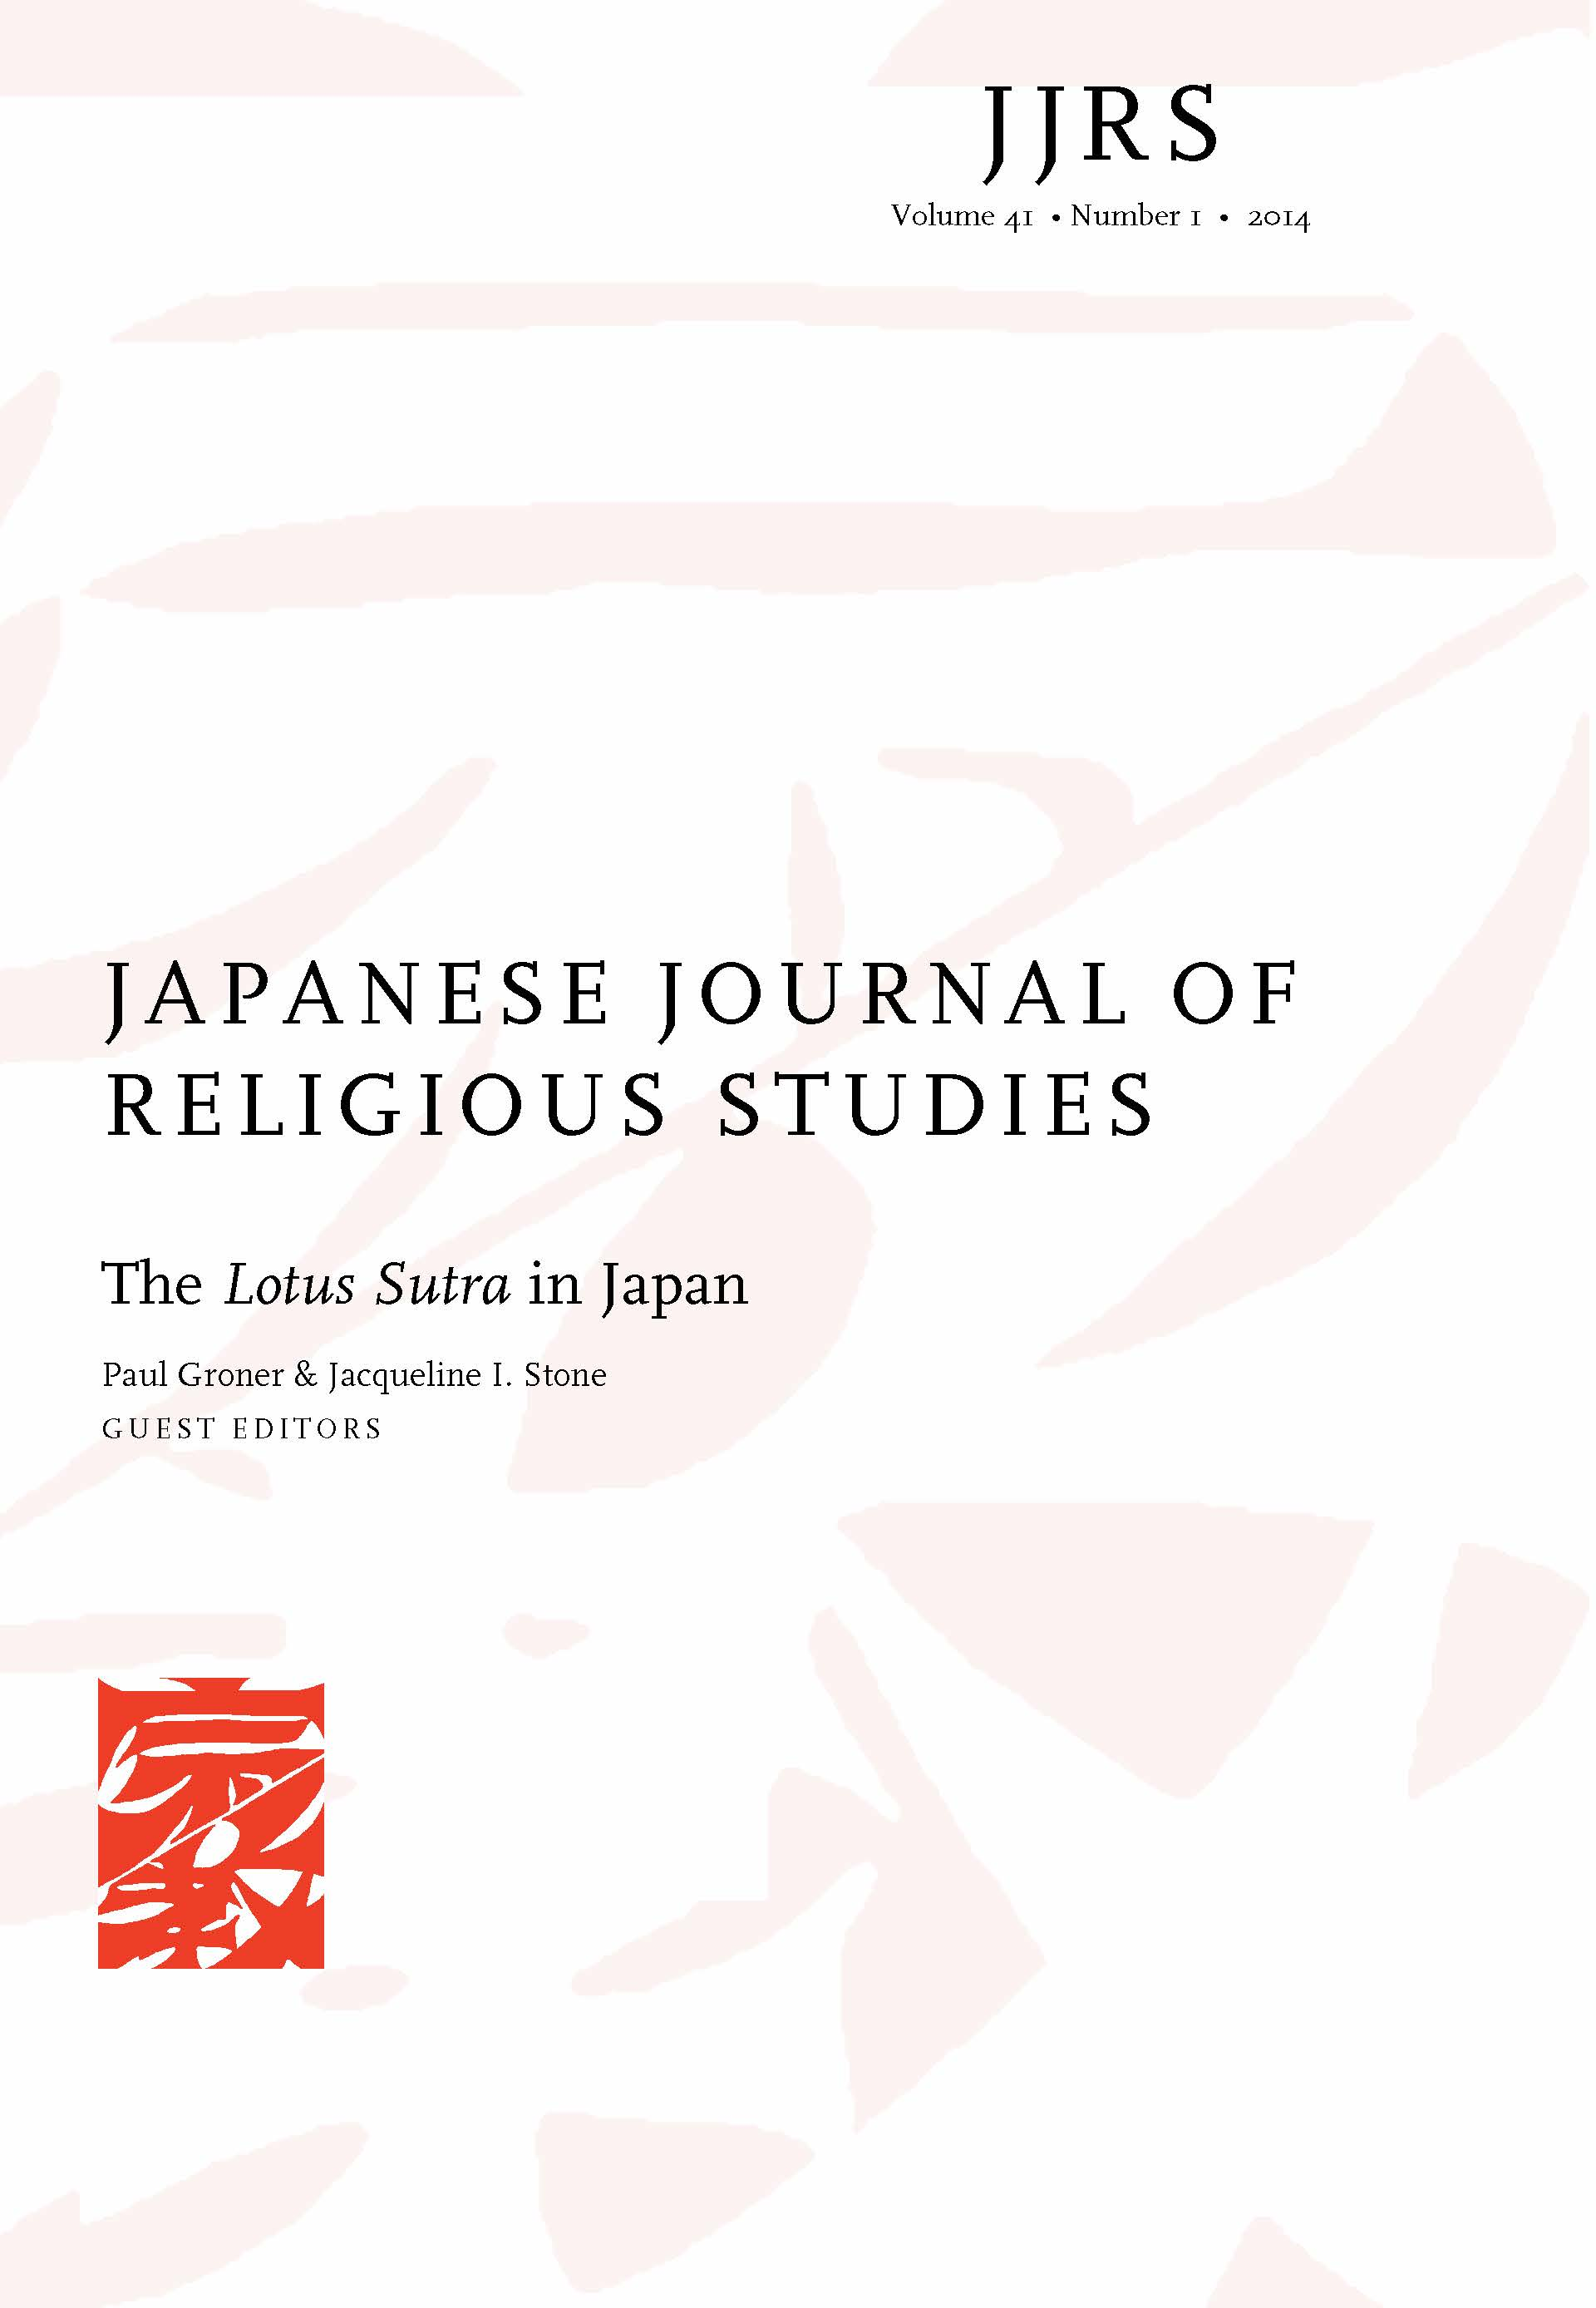 The Lotus Sutra in Japan, co-edited with 'Paul Groner (2014)